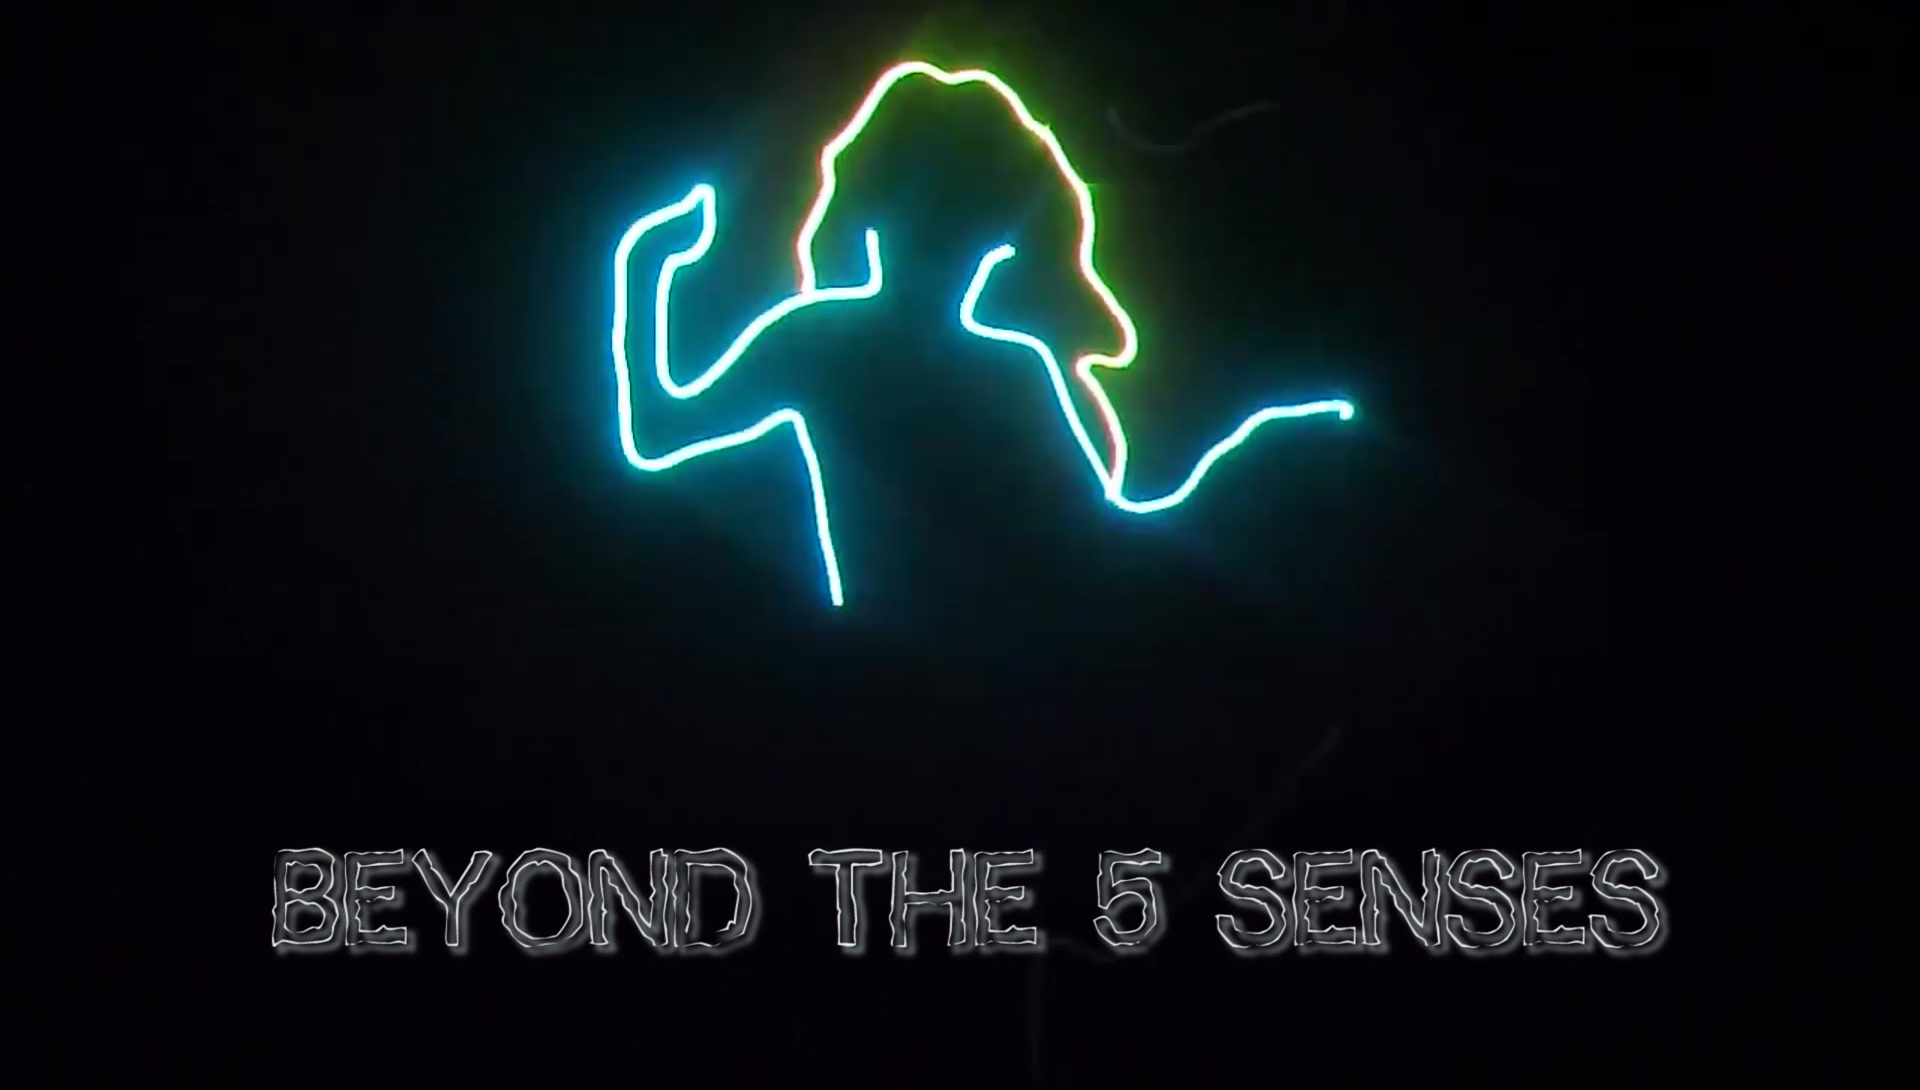 Beyond The 5 Senses